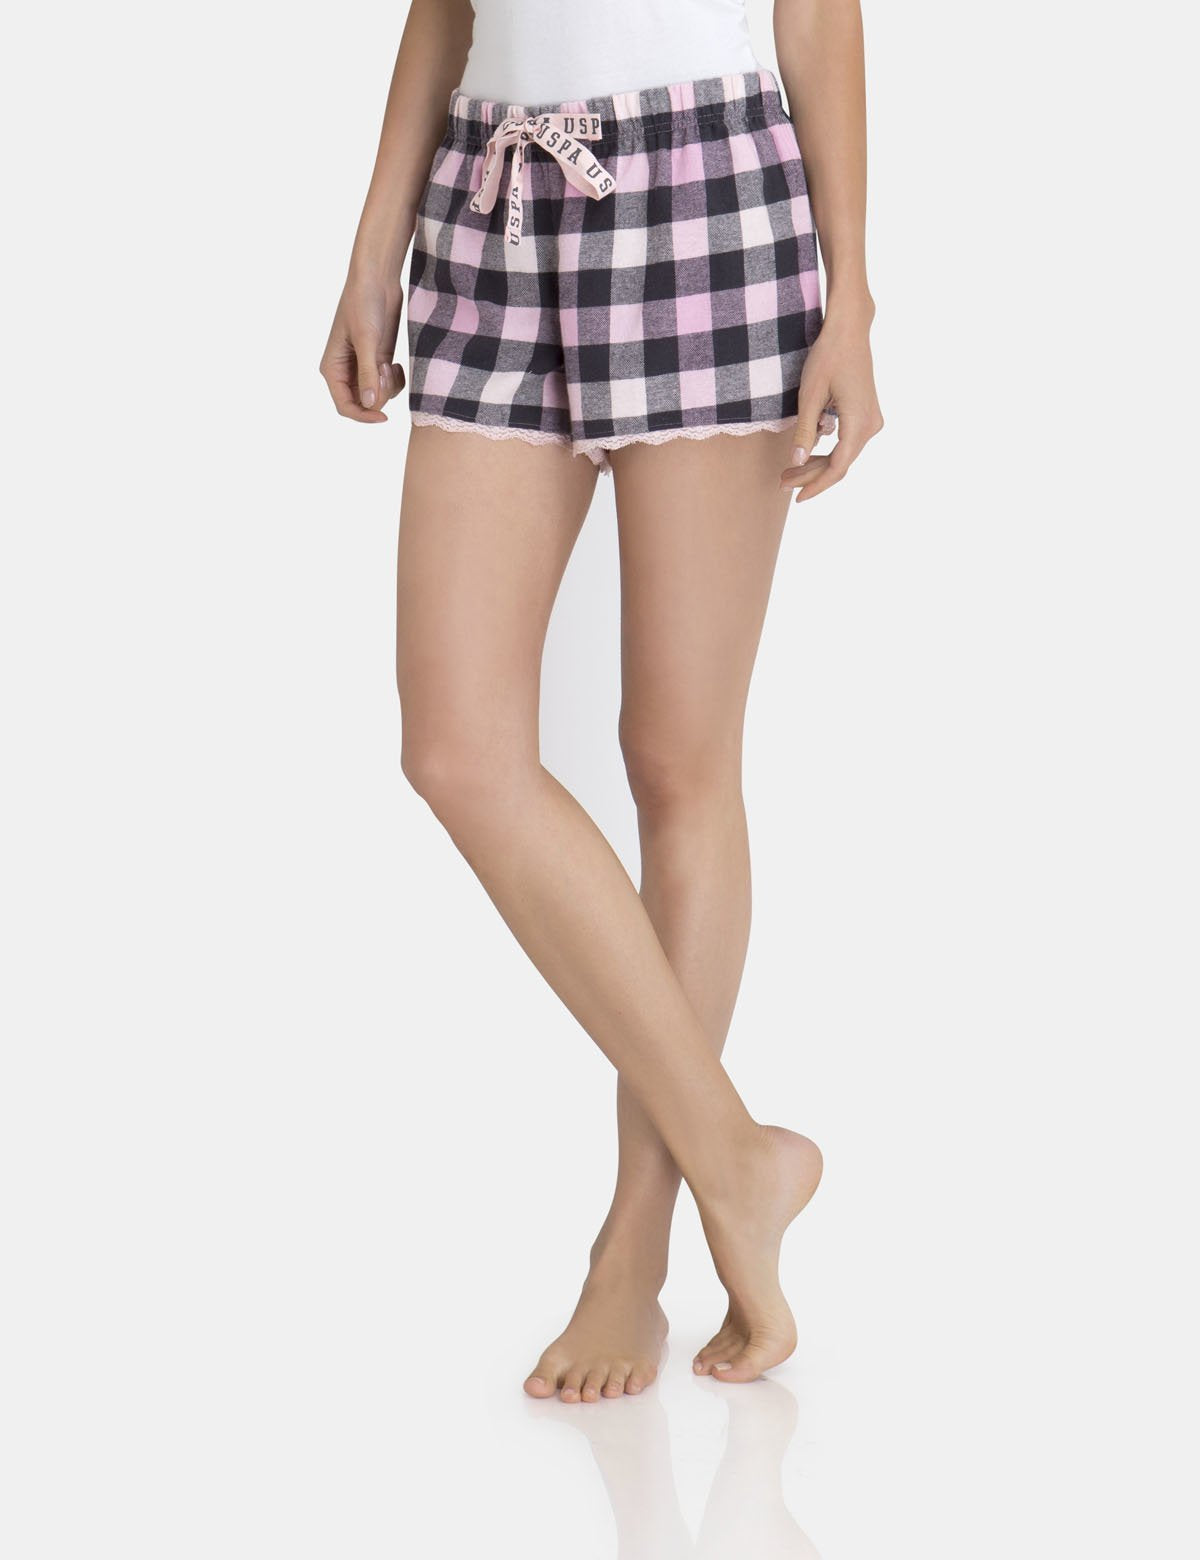 PLAID FLANNEL SHORT - U.S. Polo Assn.